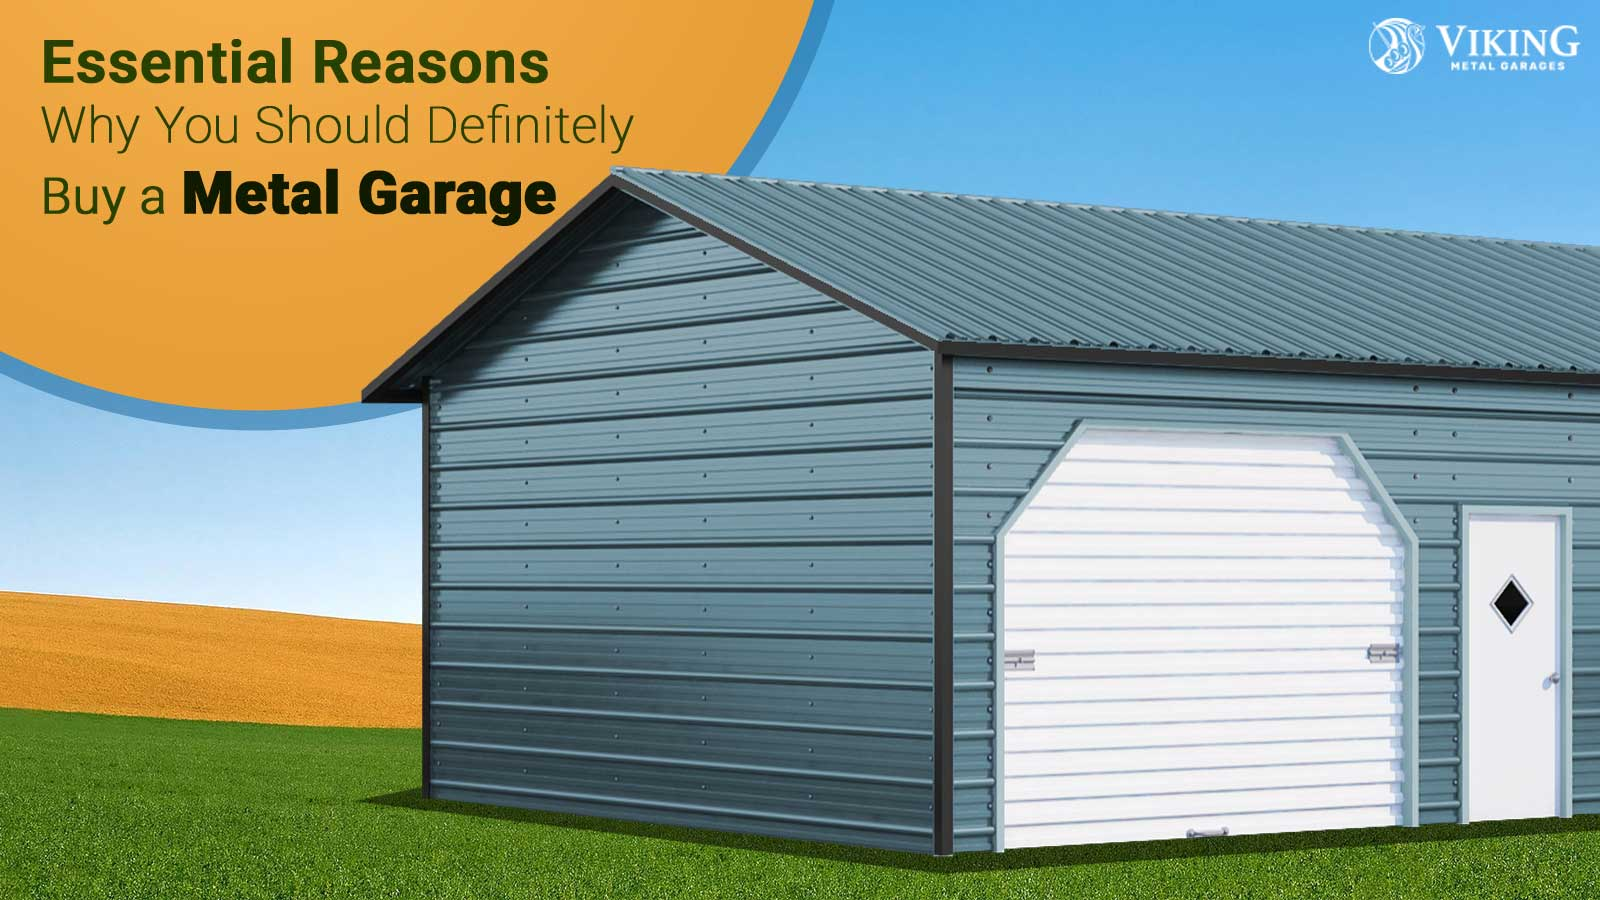 Essential Reasons Why You Should Definitely Buy a Metal Garage